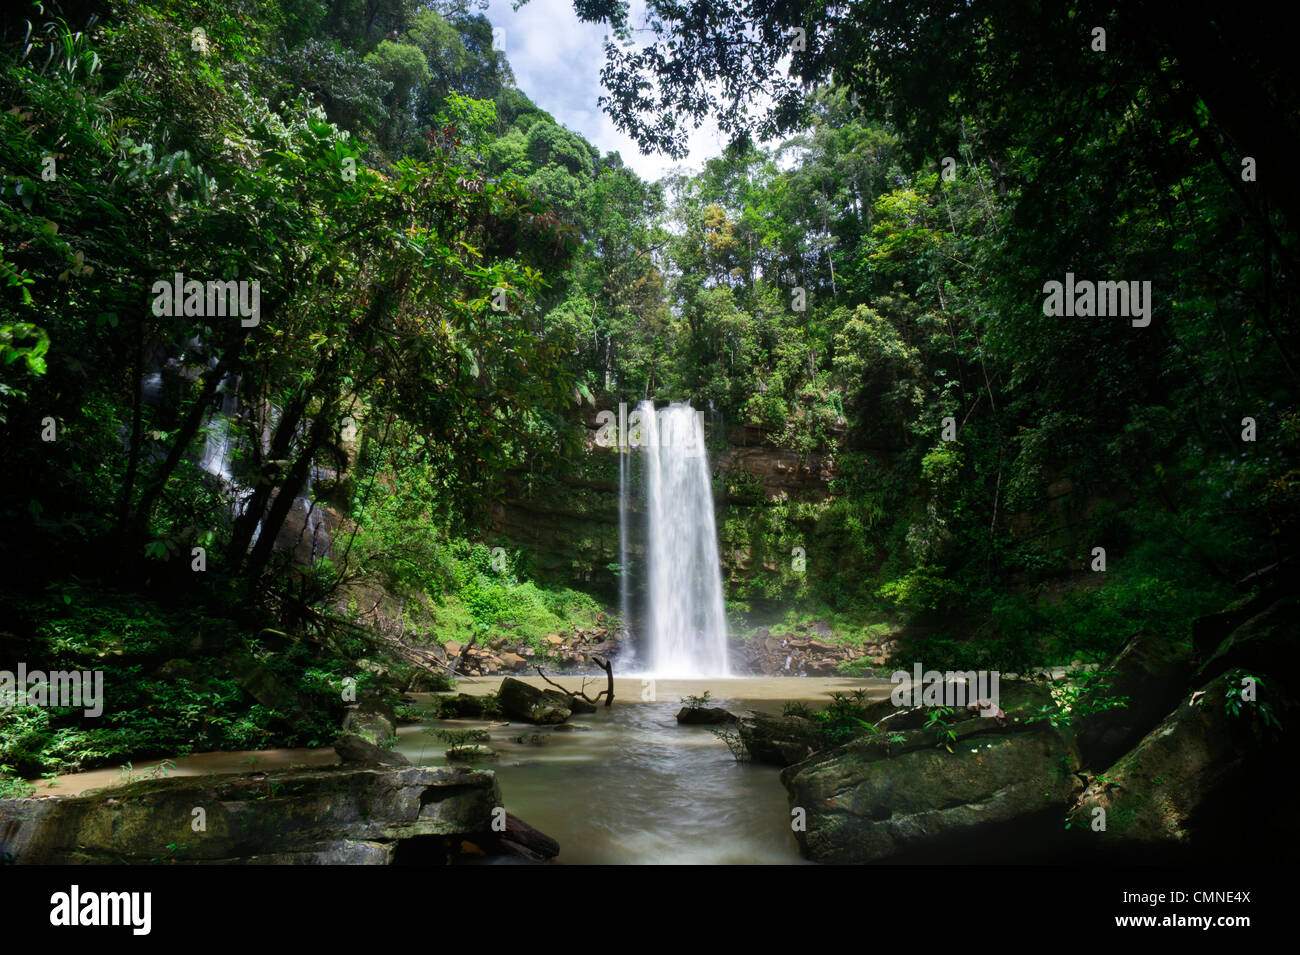 Ginseng Falls on a tributary of the Maliau River. Centre of Maliau Basin - Sabah's 'Lost World' - Borneo. - Stock Image